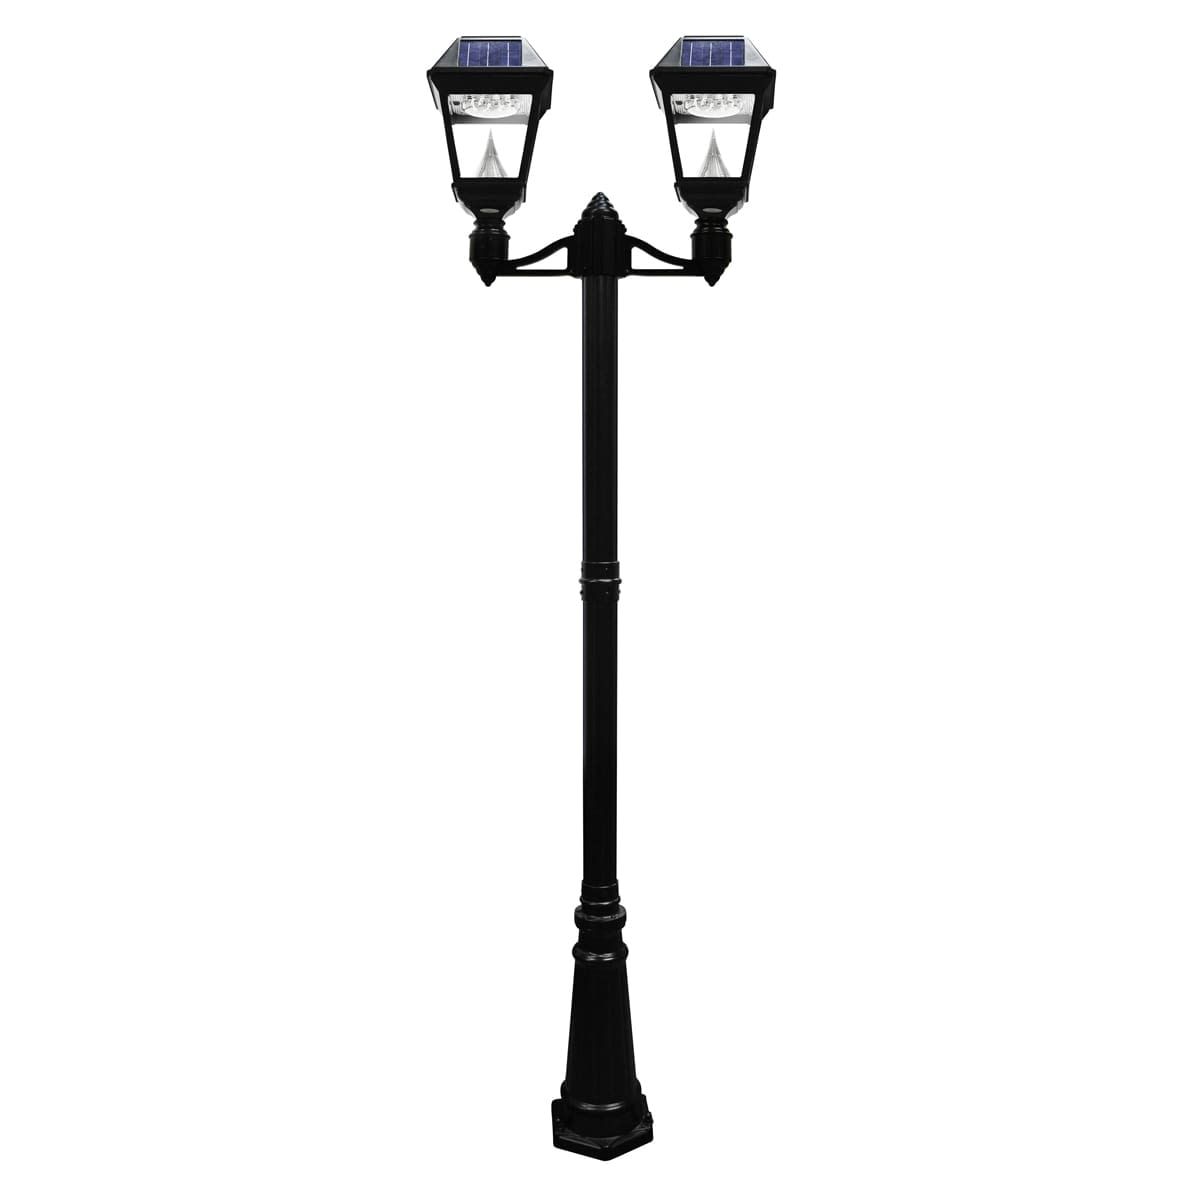 Imperial-II-Solar-Lamp-Post-Series GS-97ND